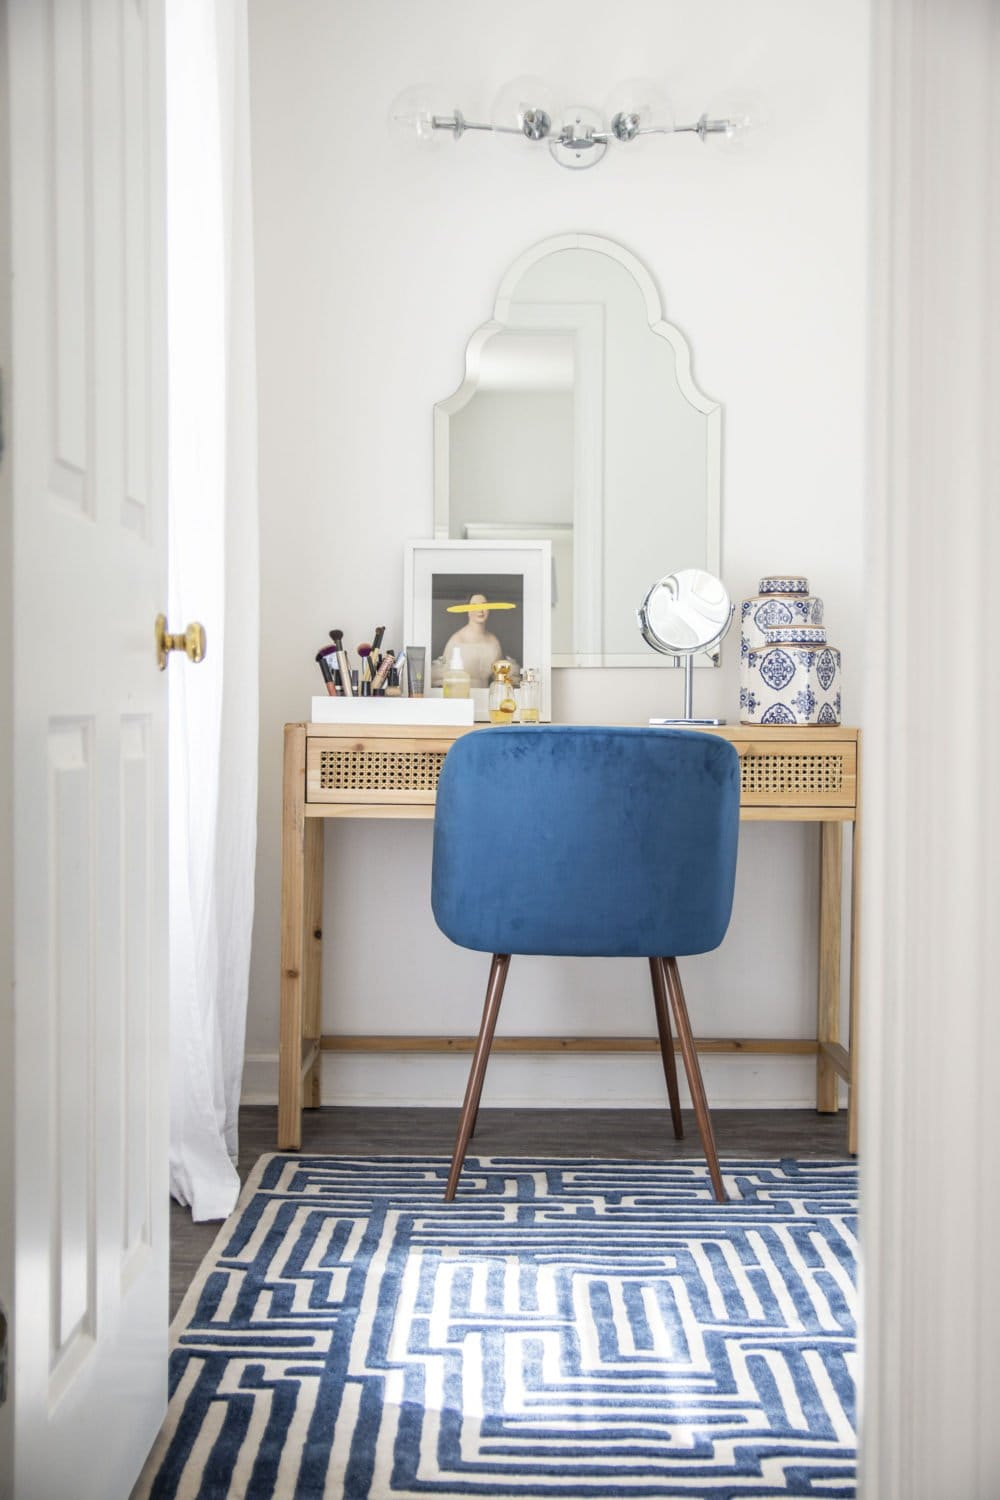 Blue and white vanity room in master suite with cane console desk, blue velvet chair, and Moroccan mirror on Thou Swell @thouswellblog #vanity #vanityroom #vanitydesign #masterbedroom #mastersuite #interior #interiordesign